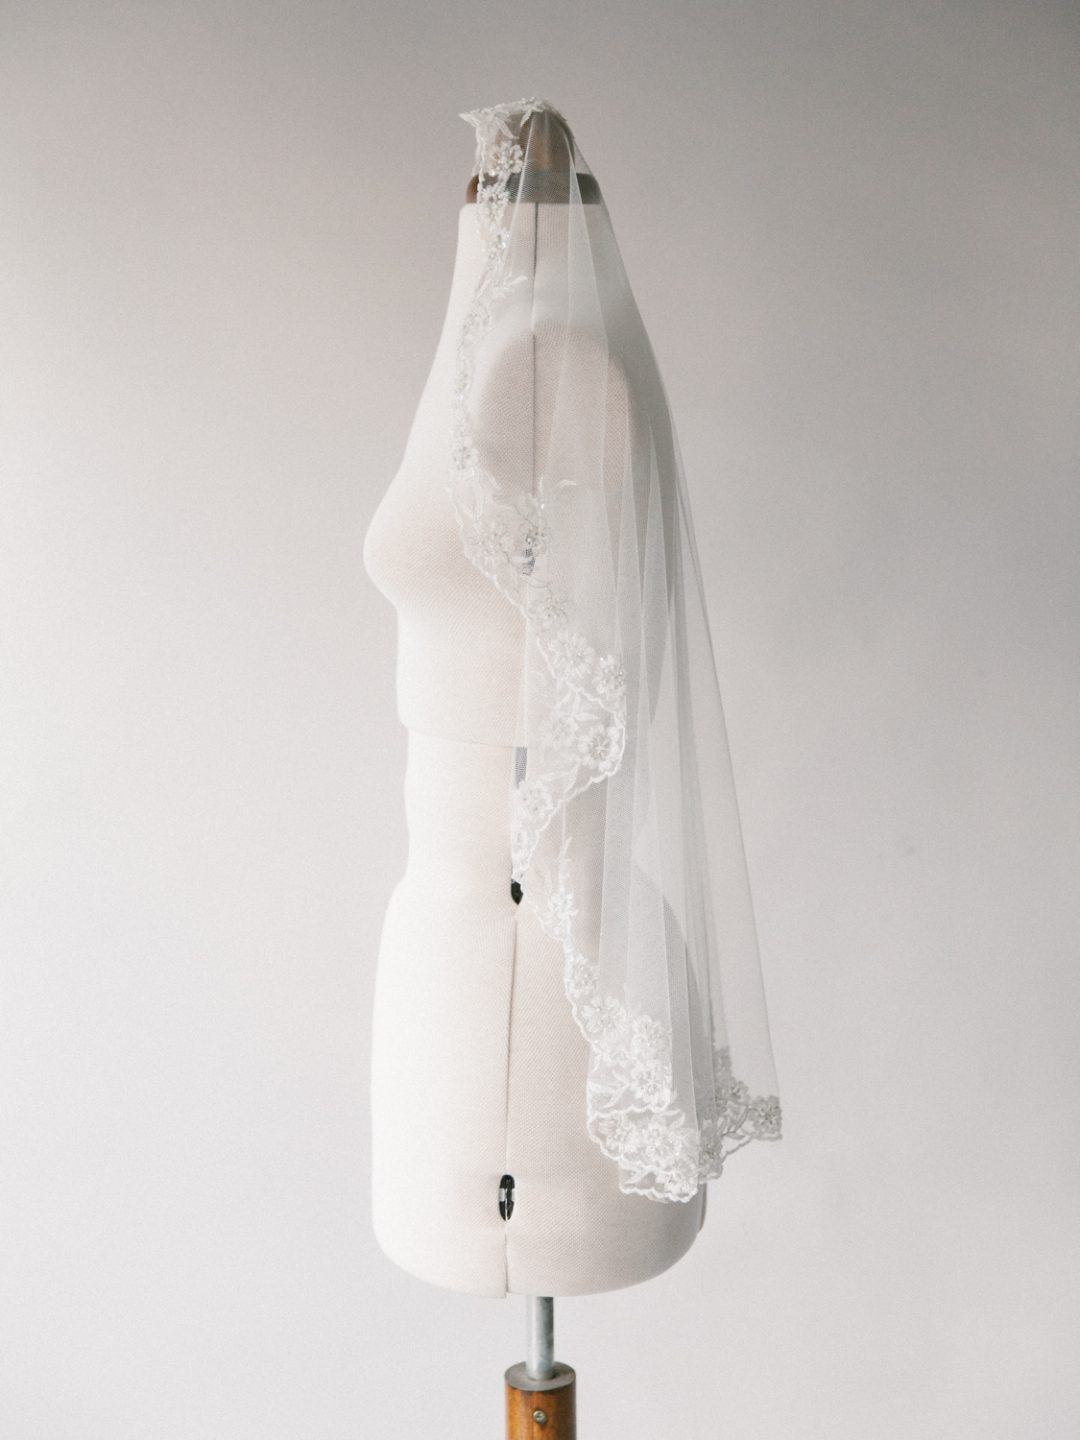 Lace Mantilla Veil - Everlasting Love - SIBO Designs www.sibodesigns.com